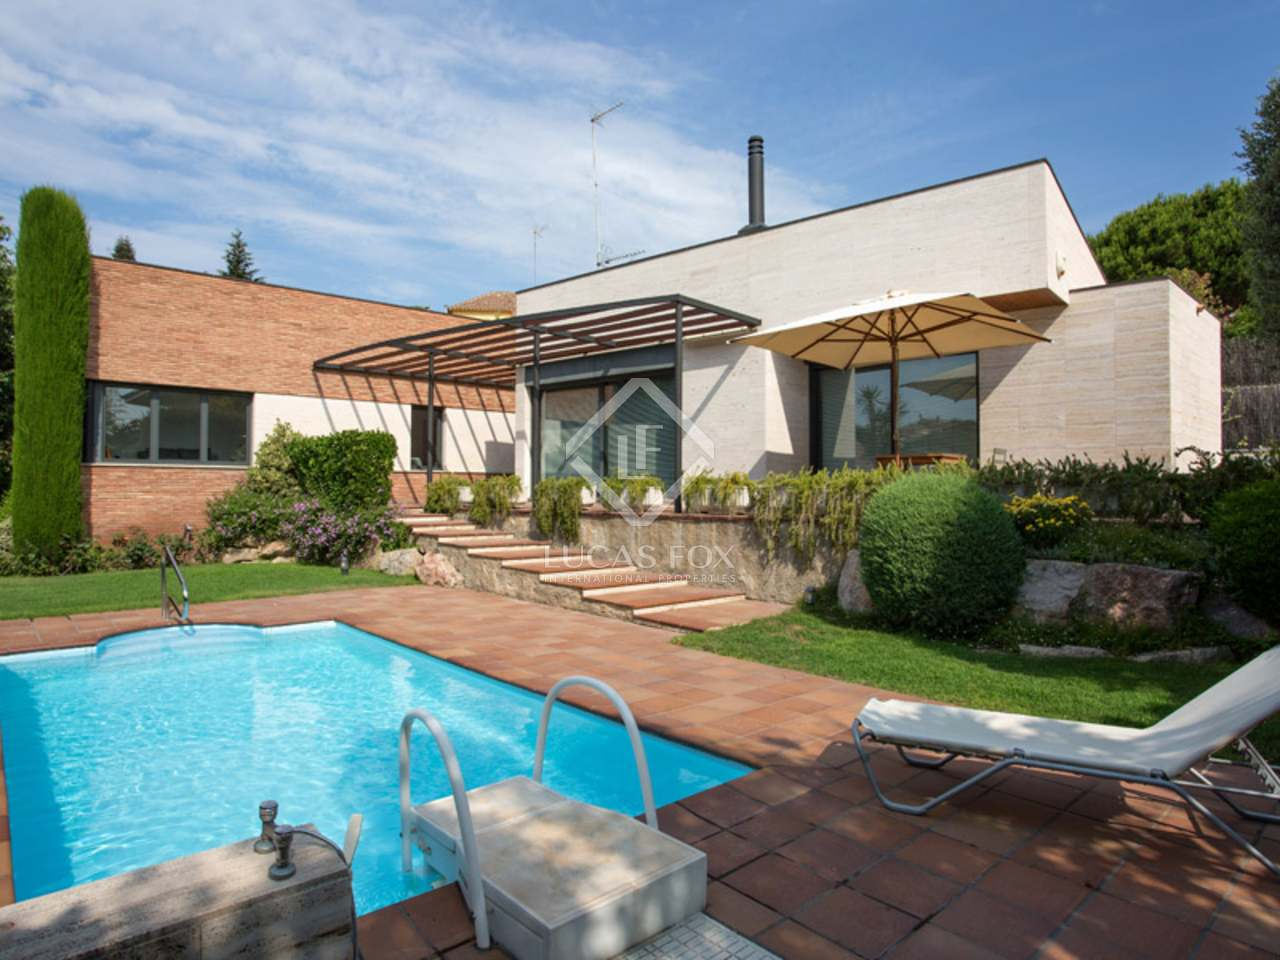 Single level modern house for sale in premia de dalt for Modern house for sale near me